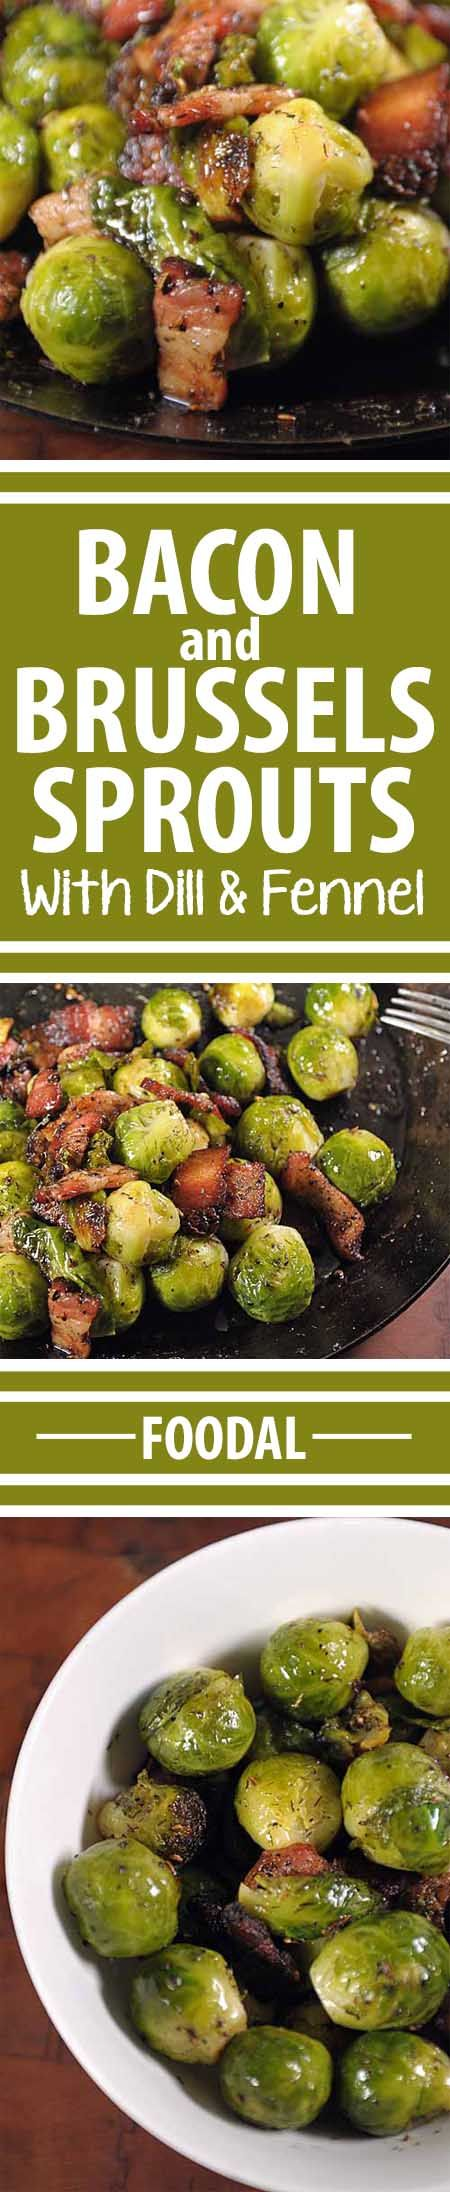 """Have you always thought that Brussels sprouts were """"icky?"""" If so, give this recipe a whirl. The added bacon gives it the flavor and texture that makes it very tasty. And the added fats helps your body absorb the nutrients packed into the sprouts. And that is what is called a win-win! Get the recipe here: http://foodal.com/recipes/veggies/organic-brussels-sprouts-sauteed-with-bacon/"""